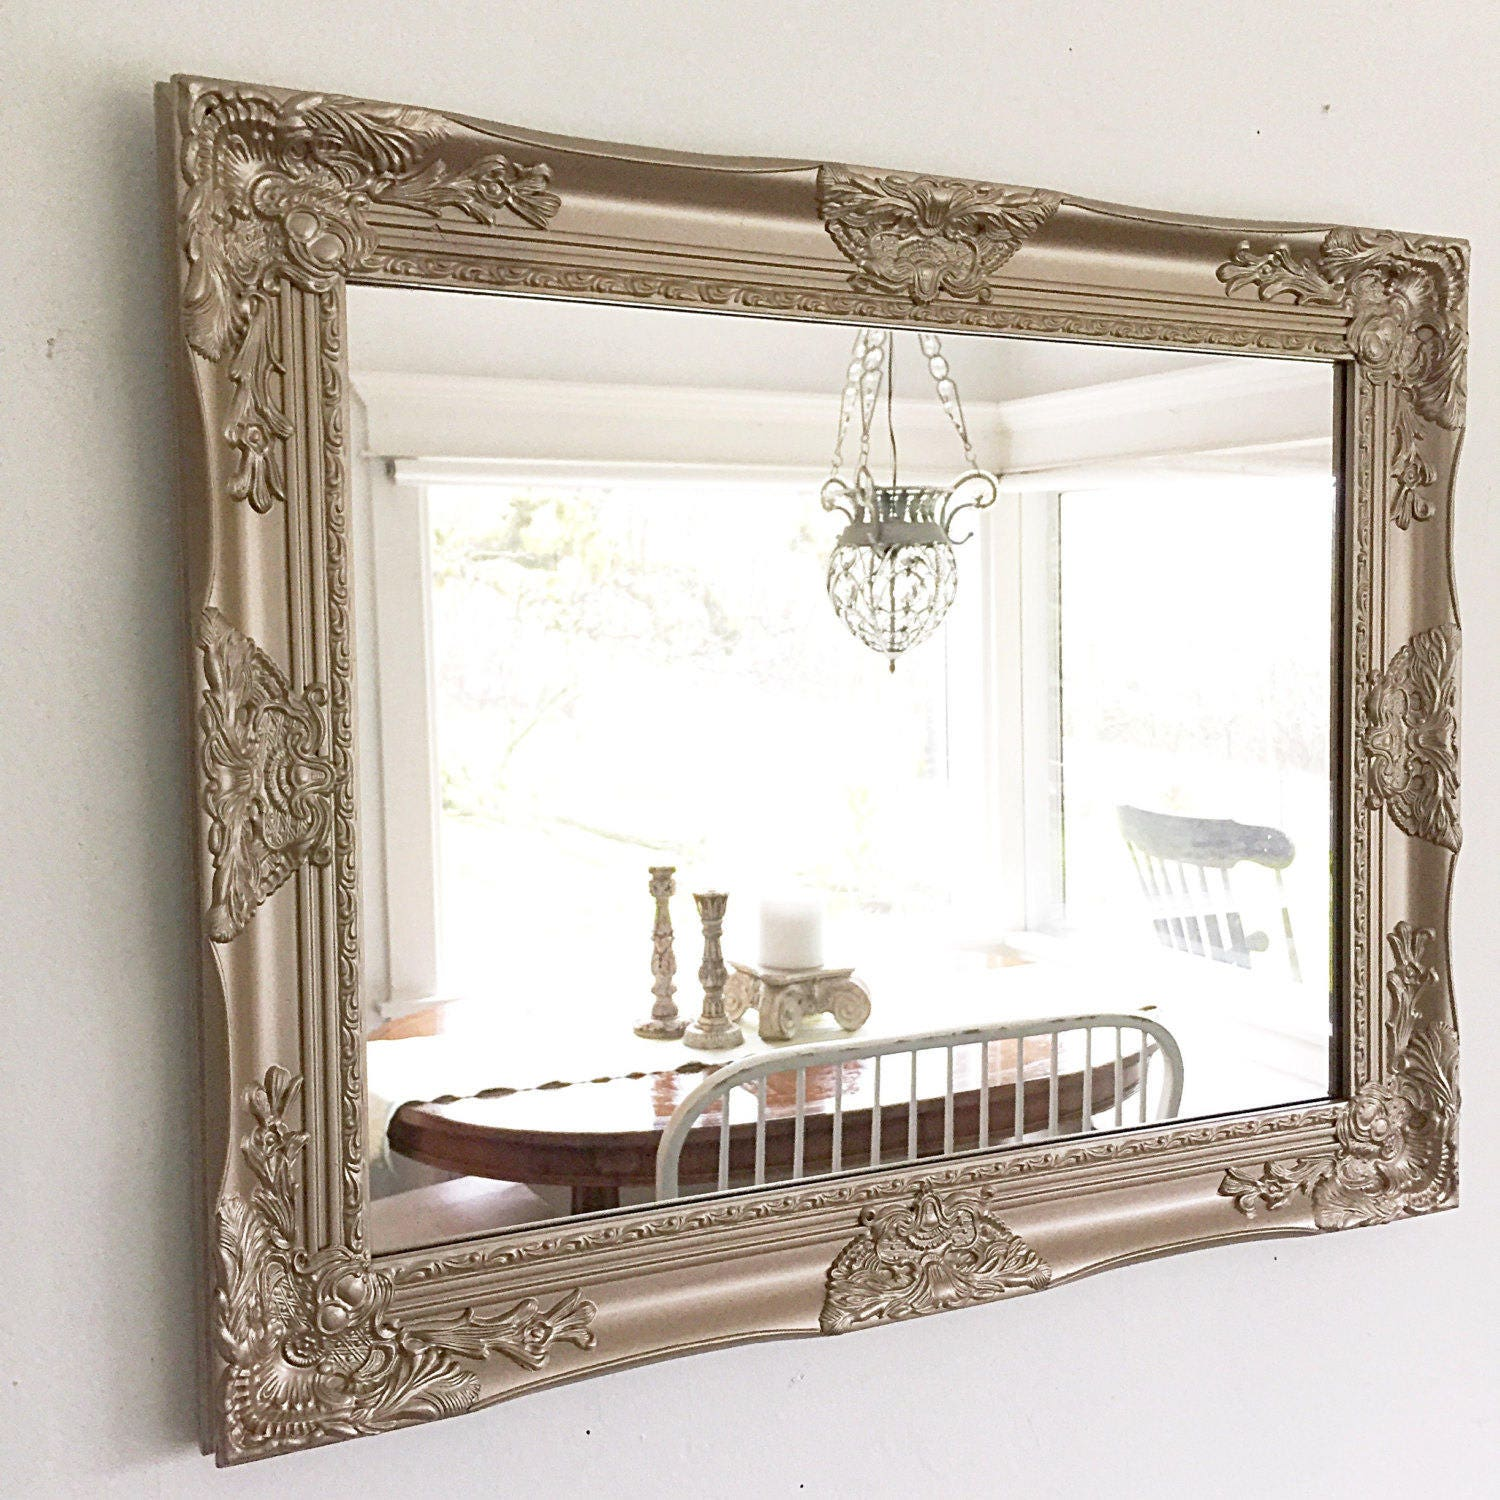 Brilliant gold bathroom mirror farmhouse mirror farmhouse - Farmhouse style bathroom mirrors ...